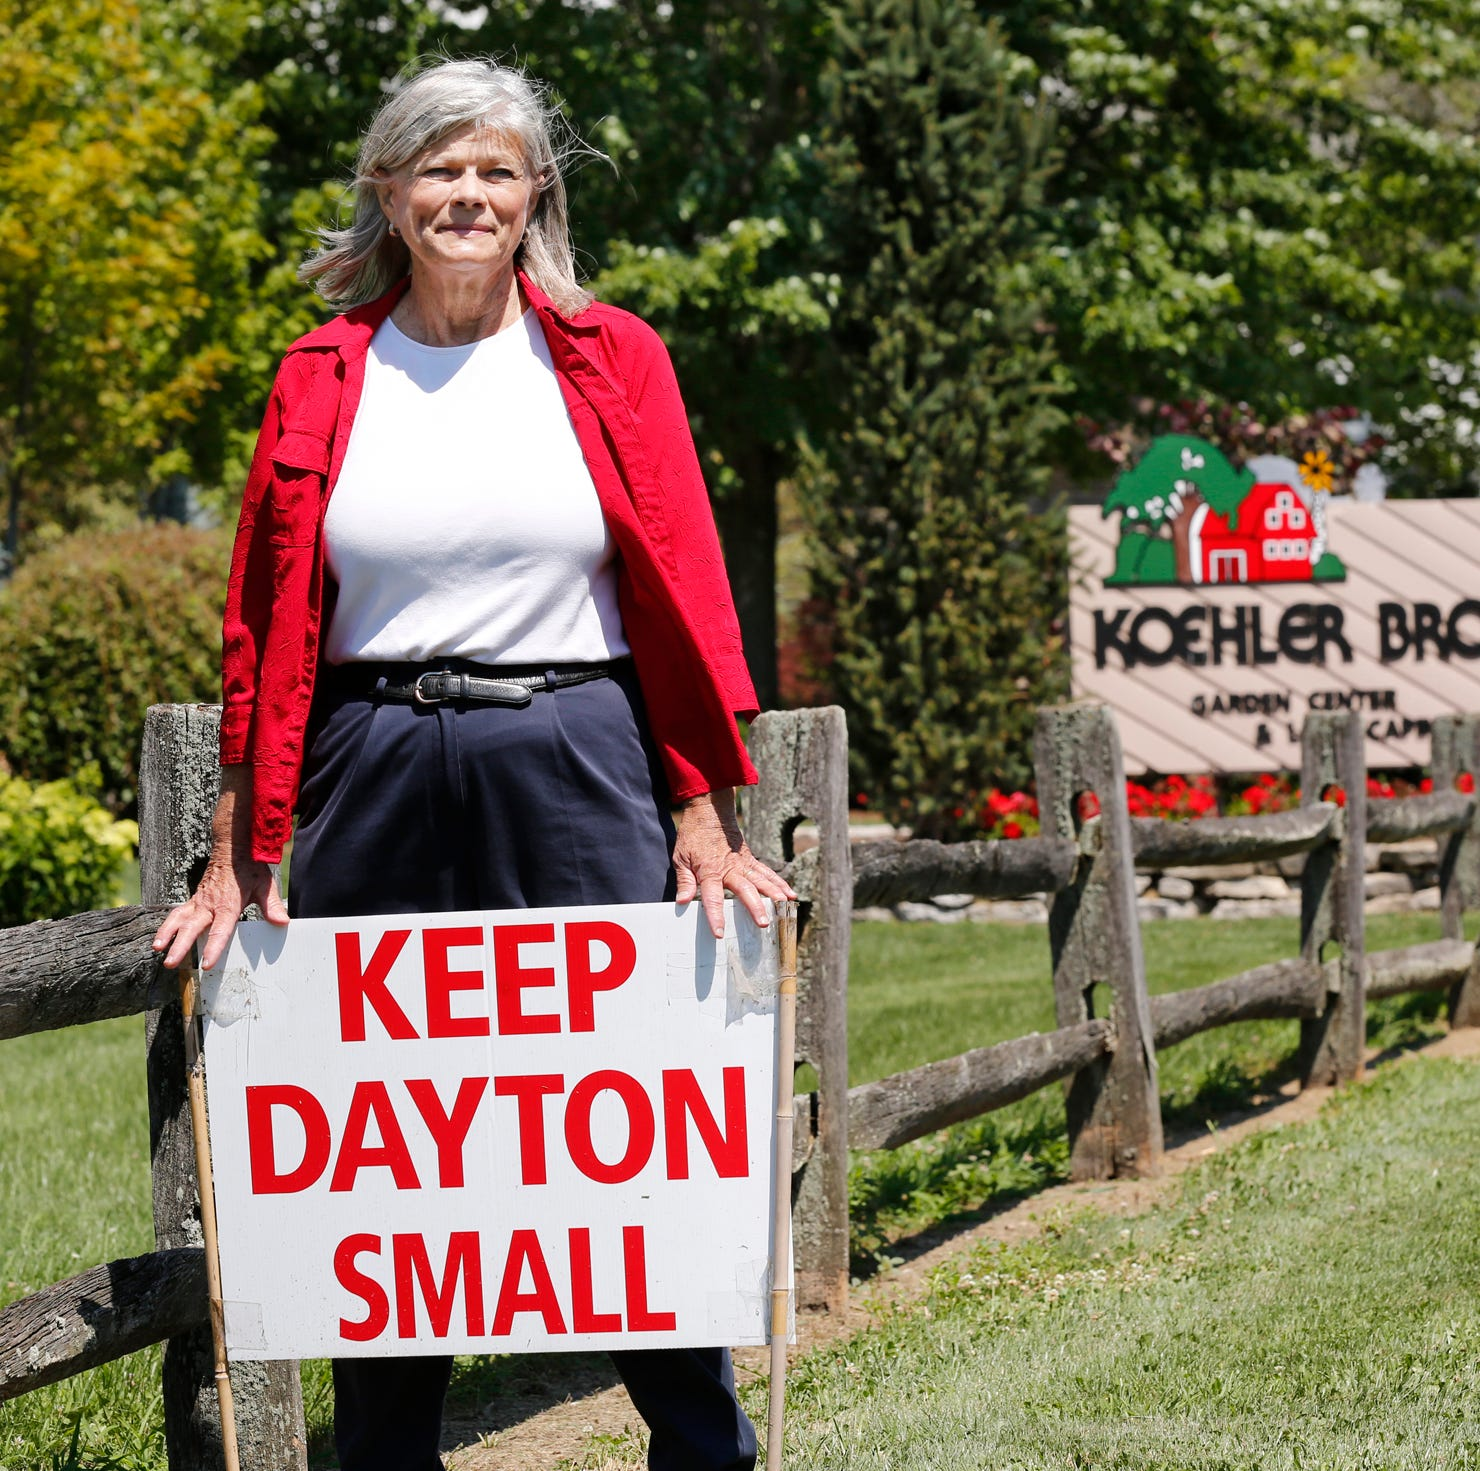 Dayton development approved, but obstacles remain